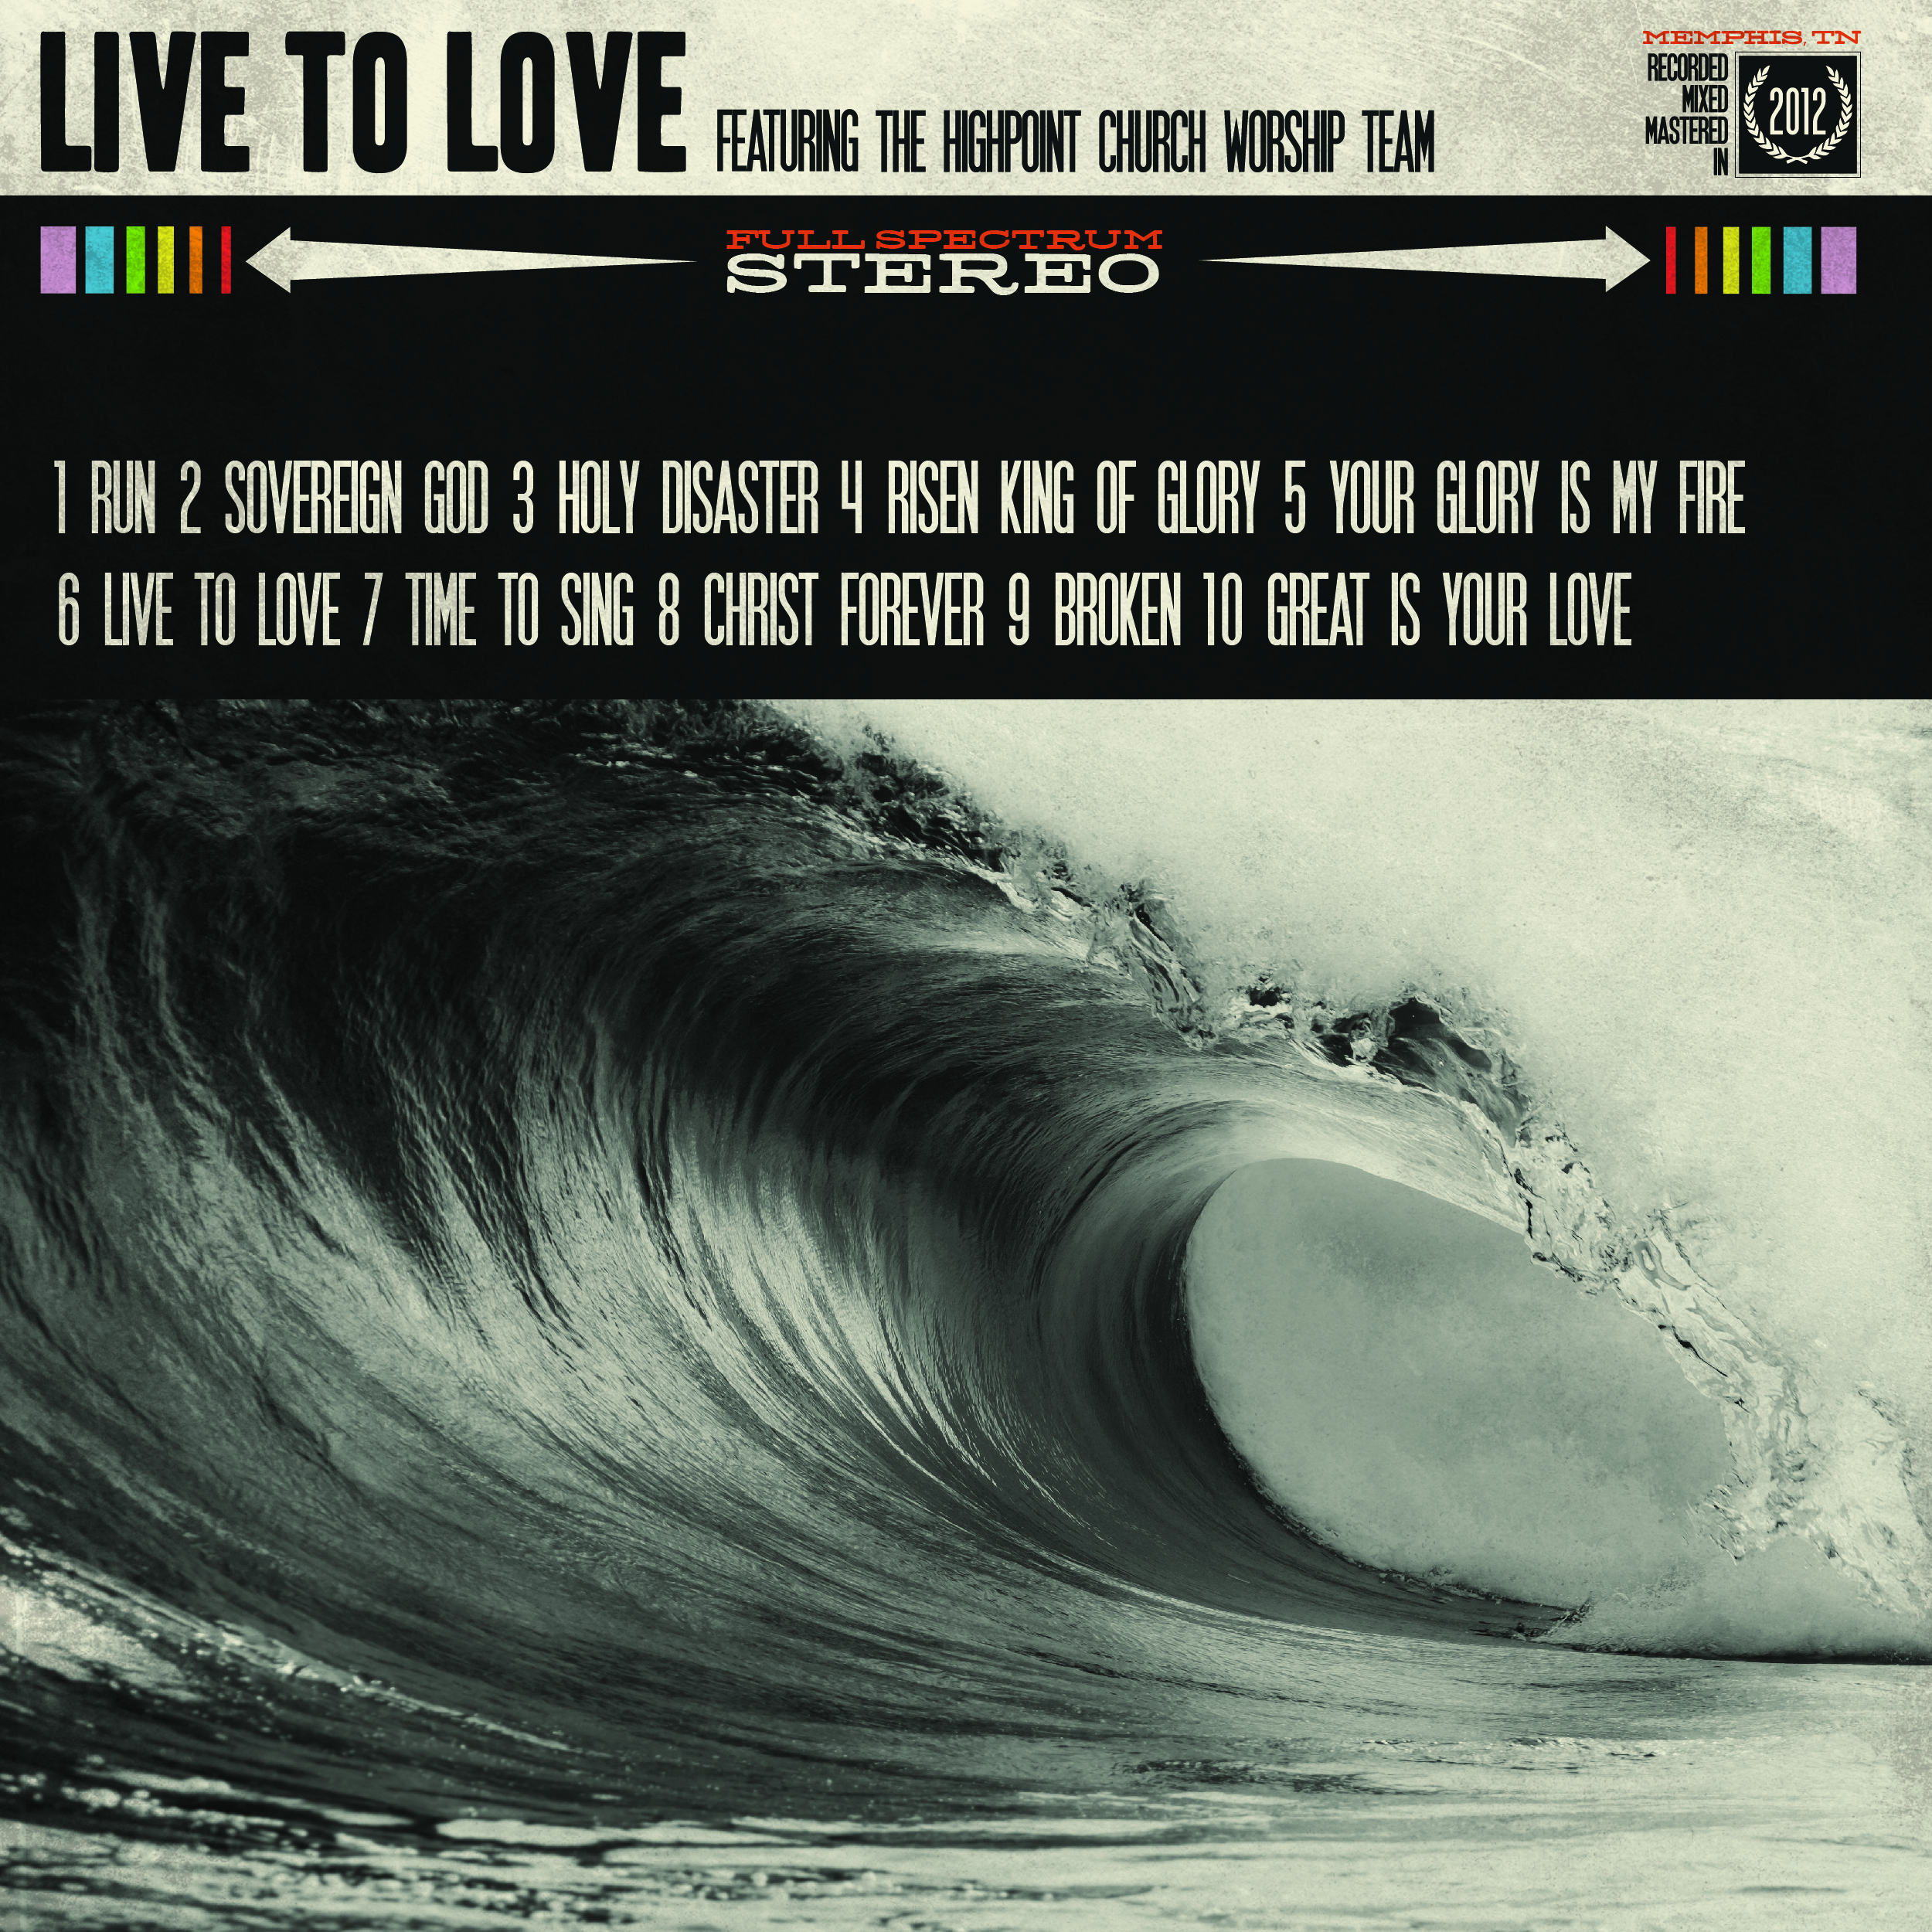 LIVE TO LOVE [2012]